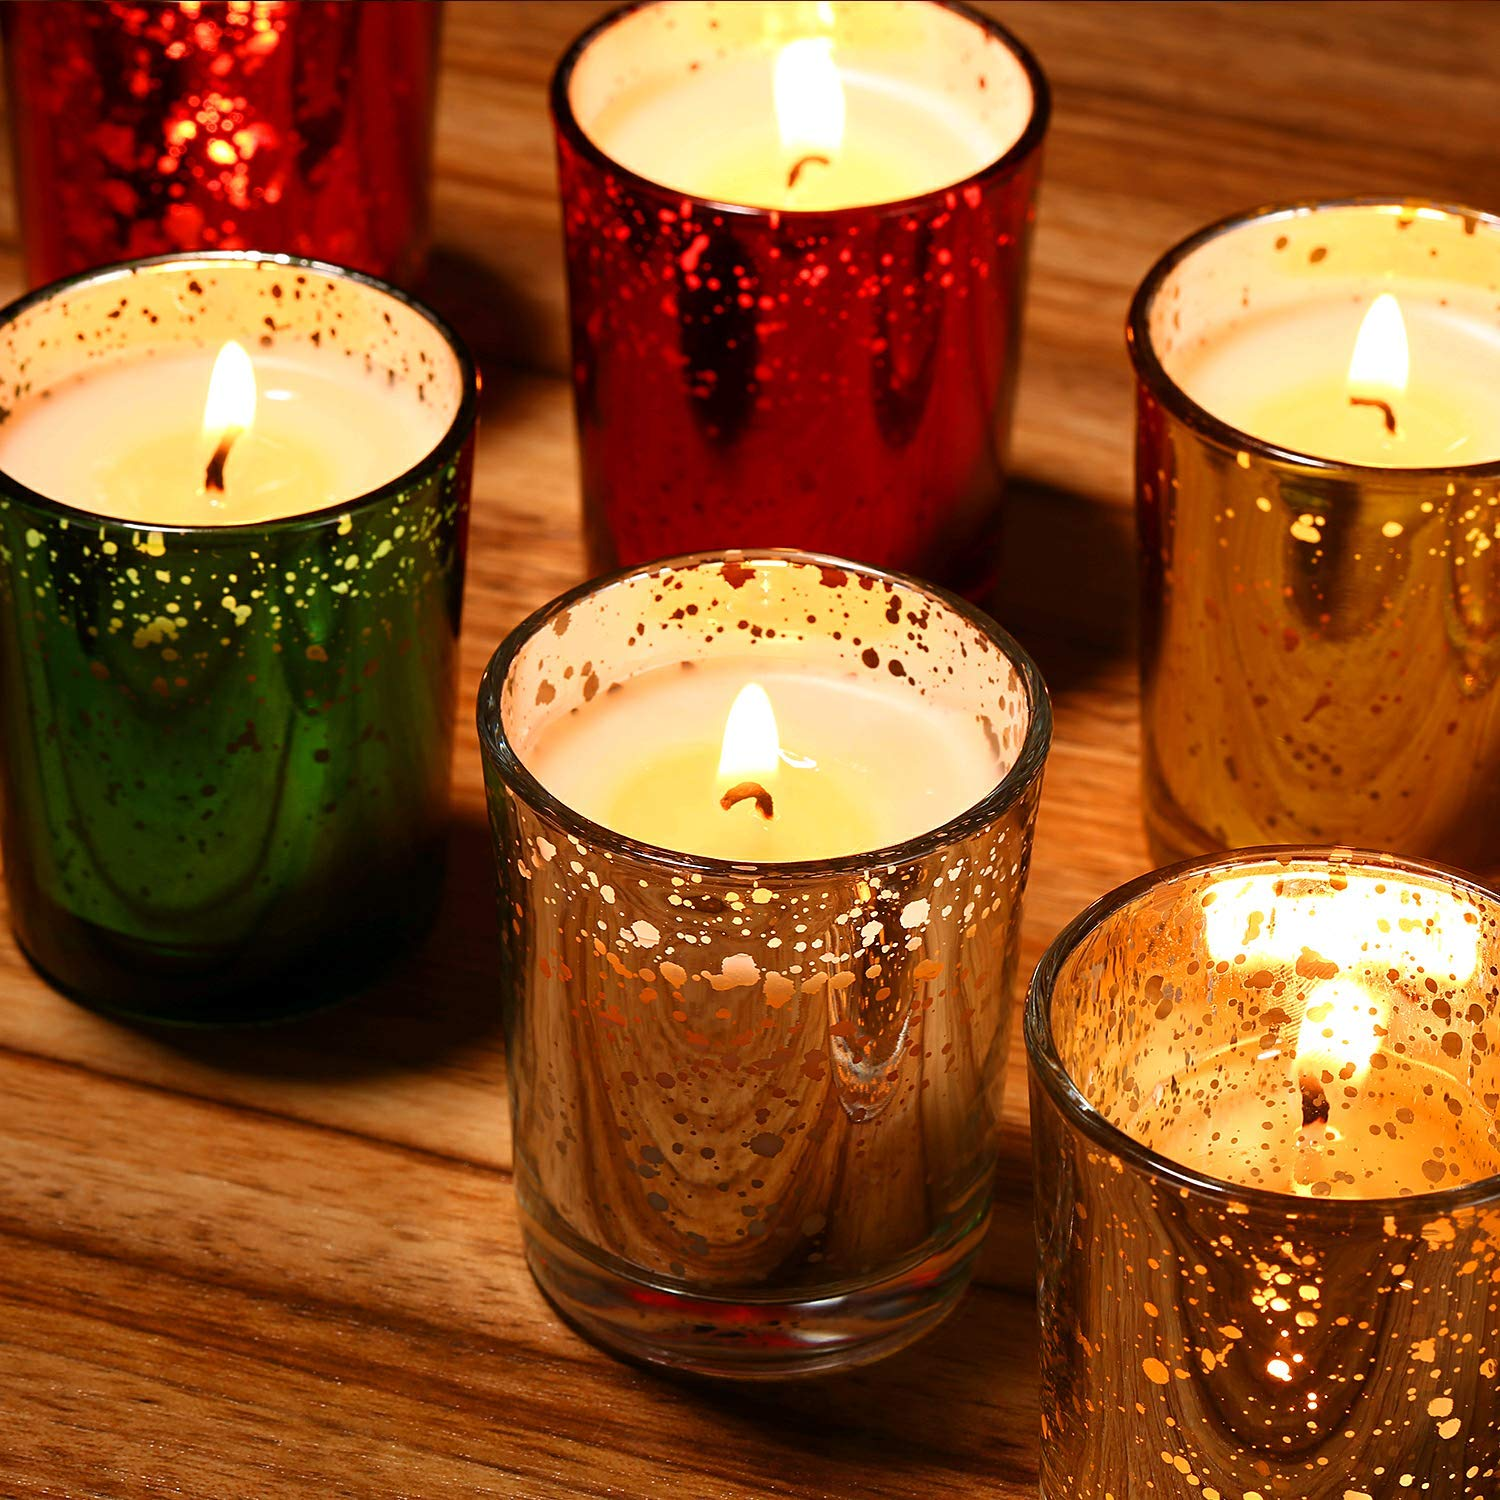 8 Pack flamecan Speckled Gold Glass Votive Scented Candle Gift Set /,/100/% Natural Soy Wax for 2.5 Oz Per Cup Portable Glass Candles with Fragrance Essential Oils for Stress Relief